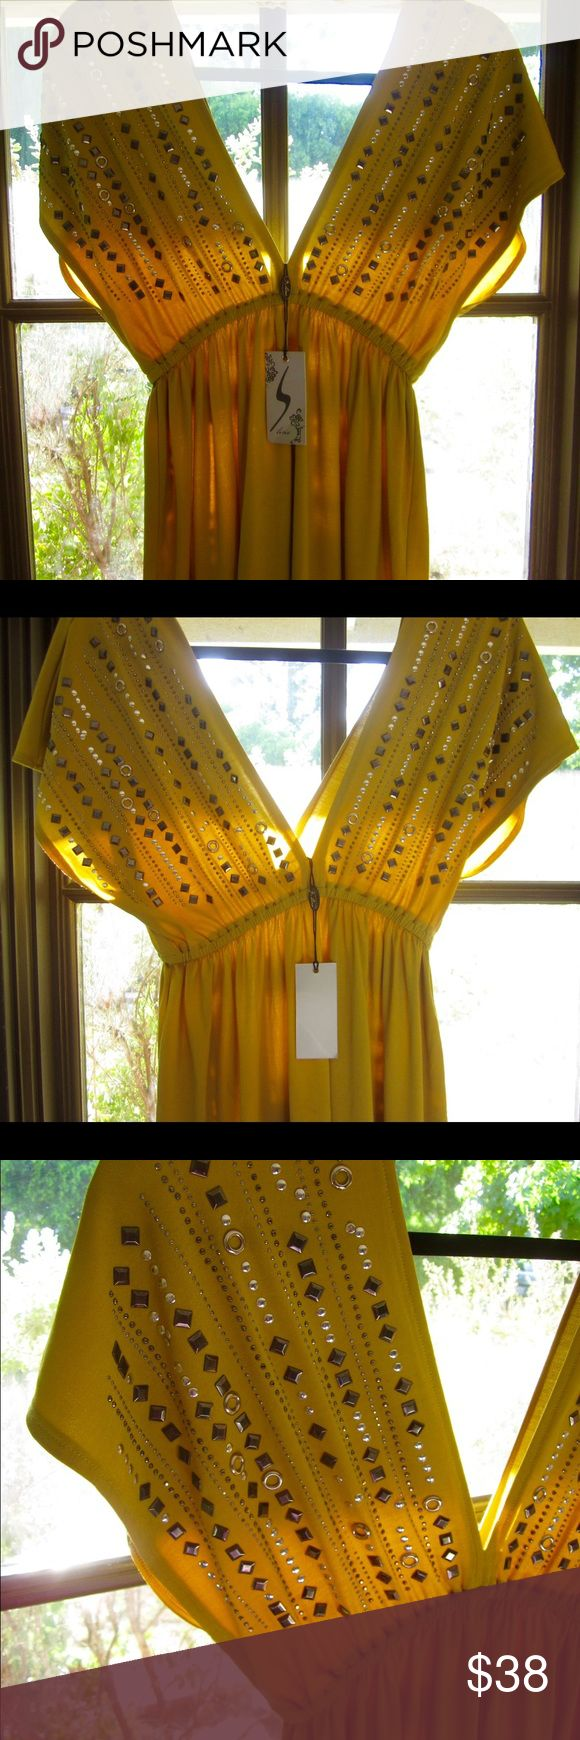 Brand New Mustard Dress Beautiful mustard colored dress that's decorated in studs. Tag says size L but it fits more like a Medium. Never worn. Dresses Mini